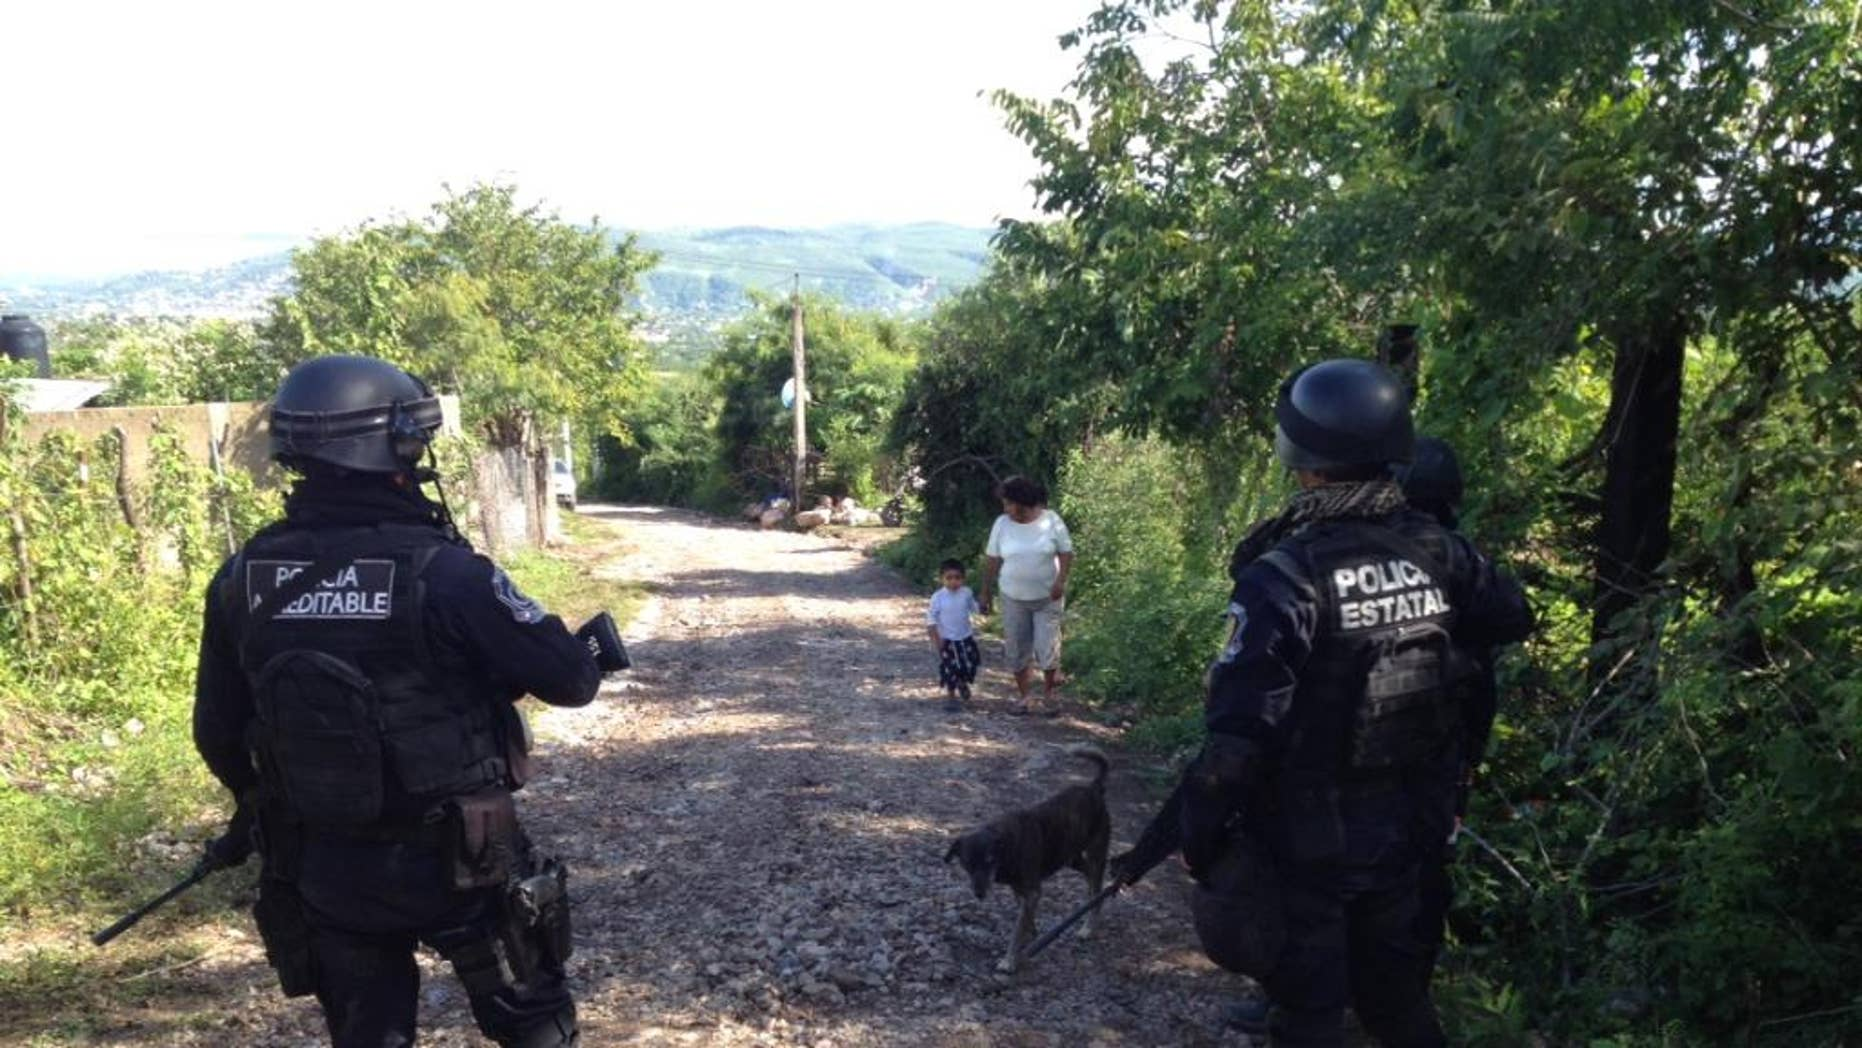 State police guard the road leading to the site where an alleged clandestine grave was found near the town of Pueblo Viejo, Mexico, Saturday, Oct. 4,2014. The clandestine grave holding an undetermined number of bodies was found outside a town where violence last weekend resulted in six deaths and the disappearance of 43 students, Mexican officials said Saturday. (AP Photo/Alejandrino Gonzalez)